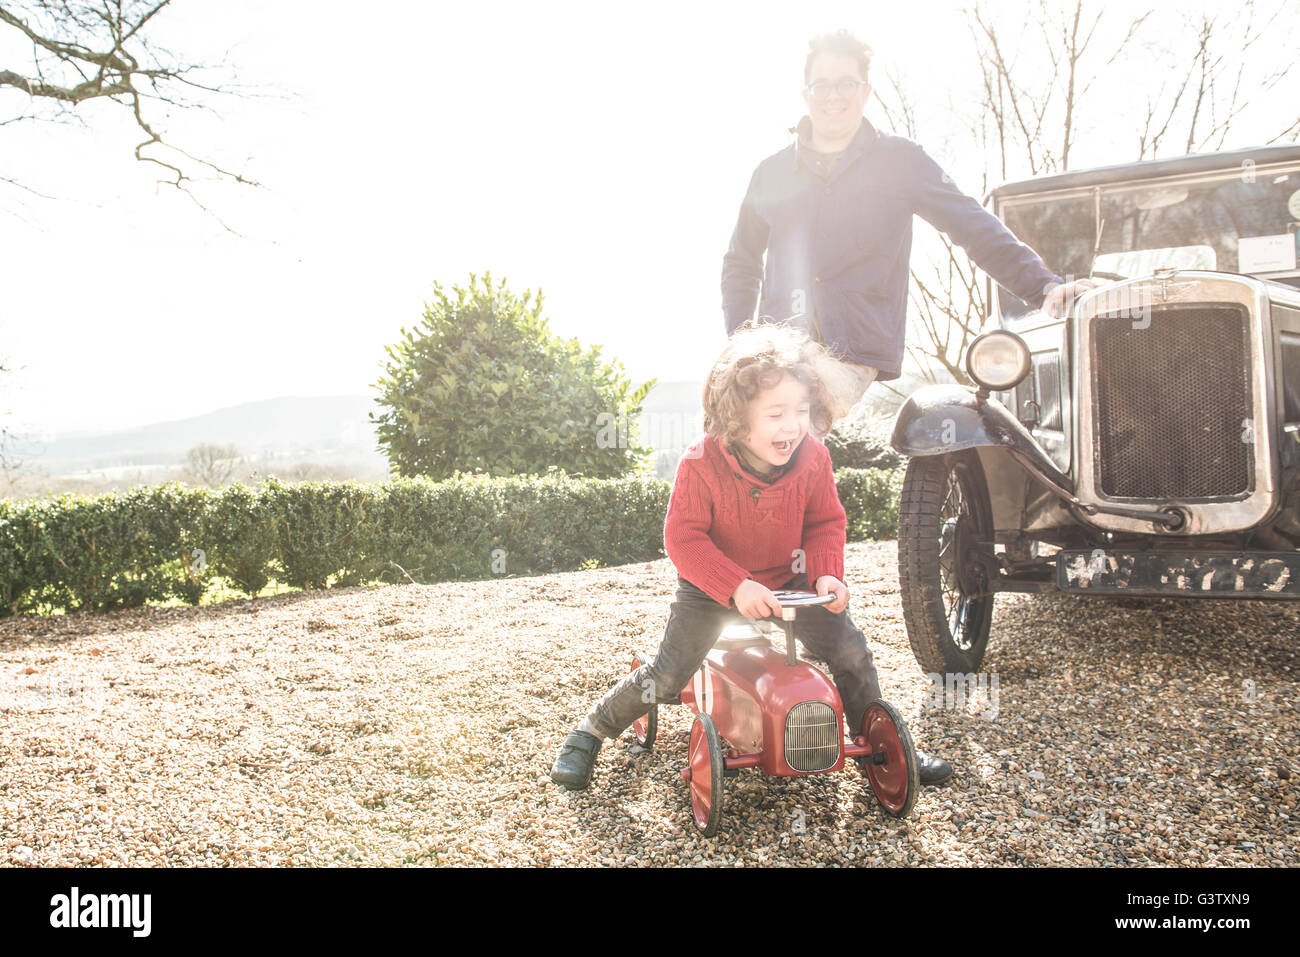 A four year old boy sitting sitting on a toy tractor watched by his father. - Stock Image